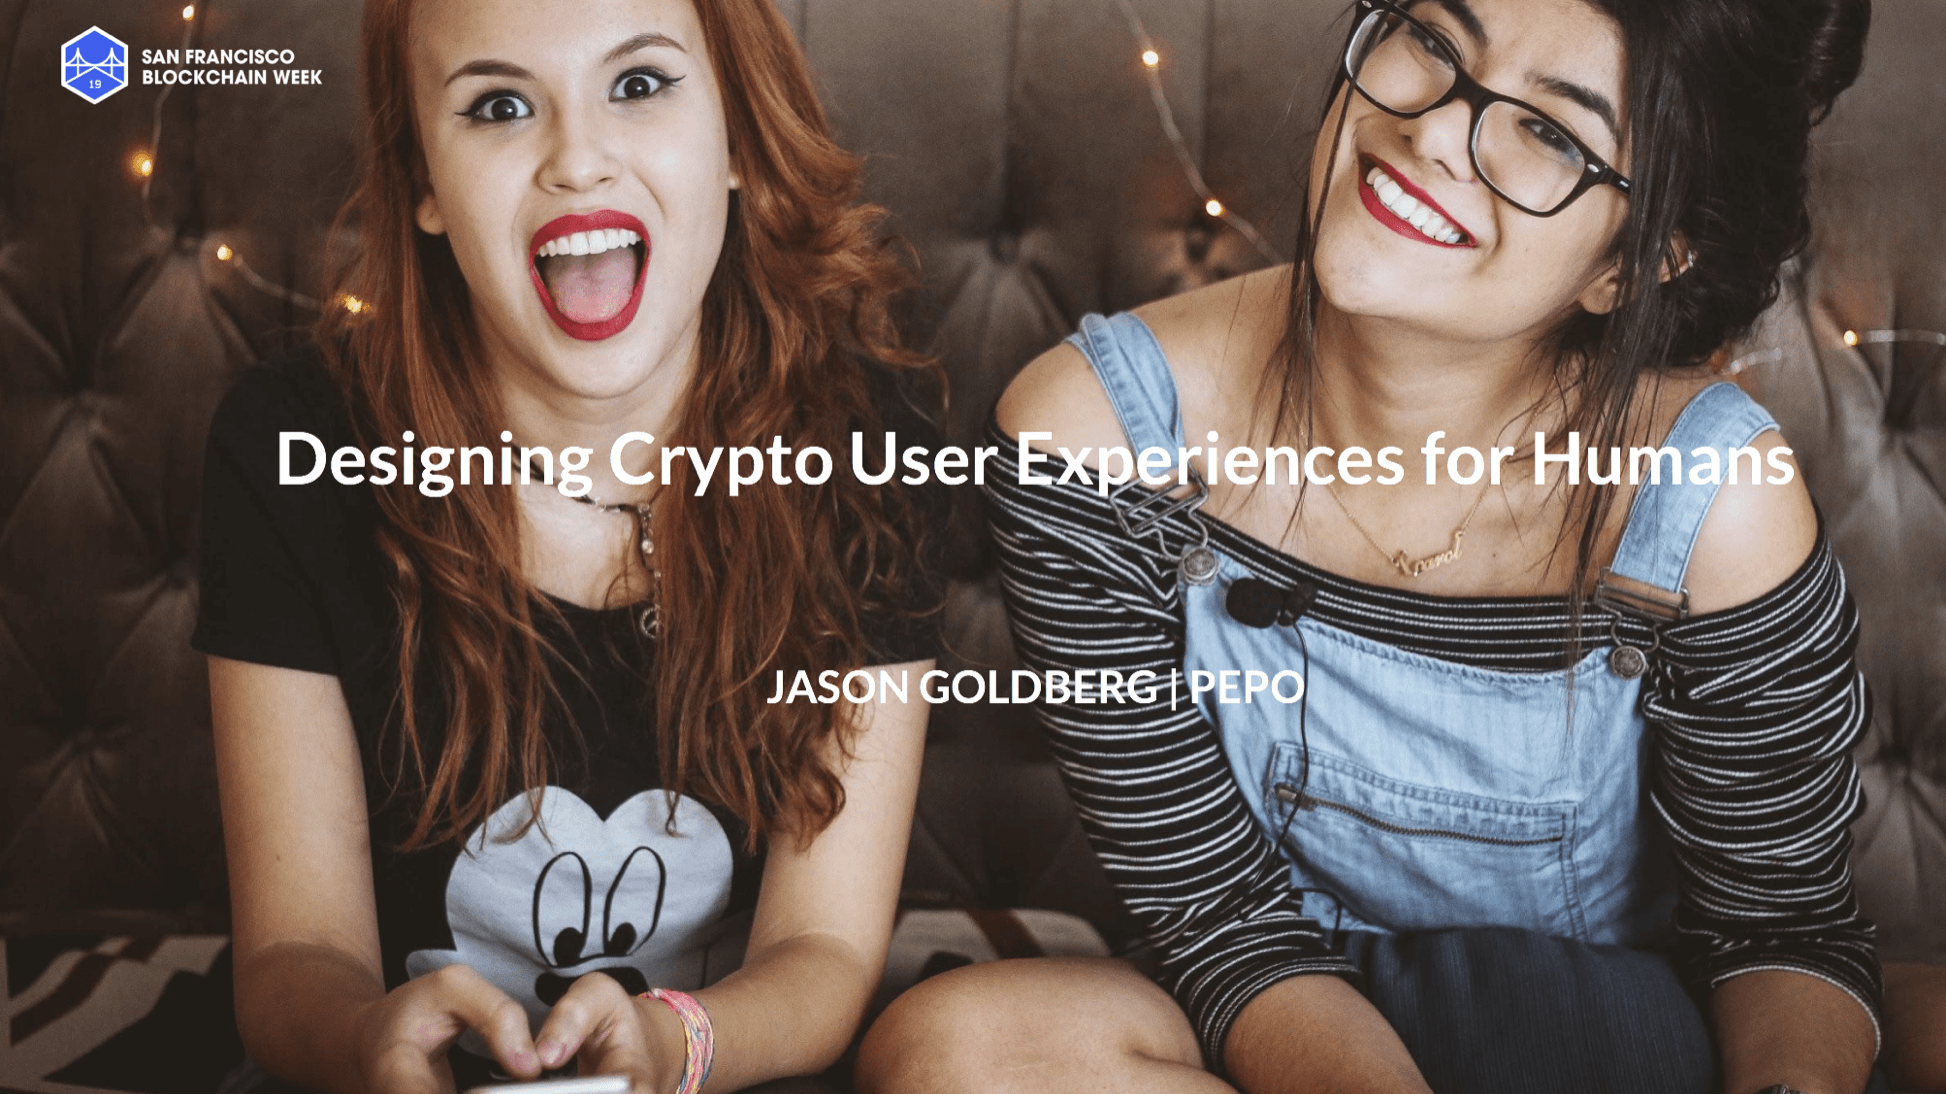 Watch Pepo's San Francisco Blockchain Week Presentation: Designing Crypto User Experiences For Humans